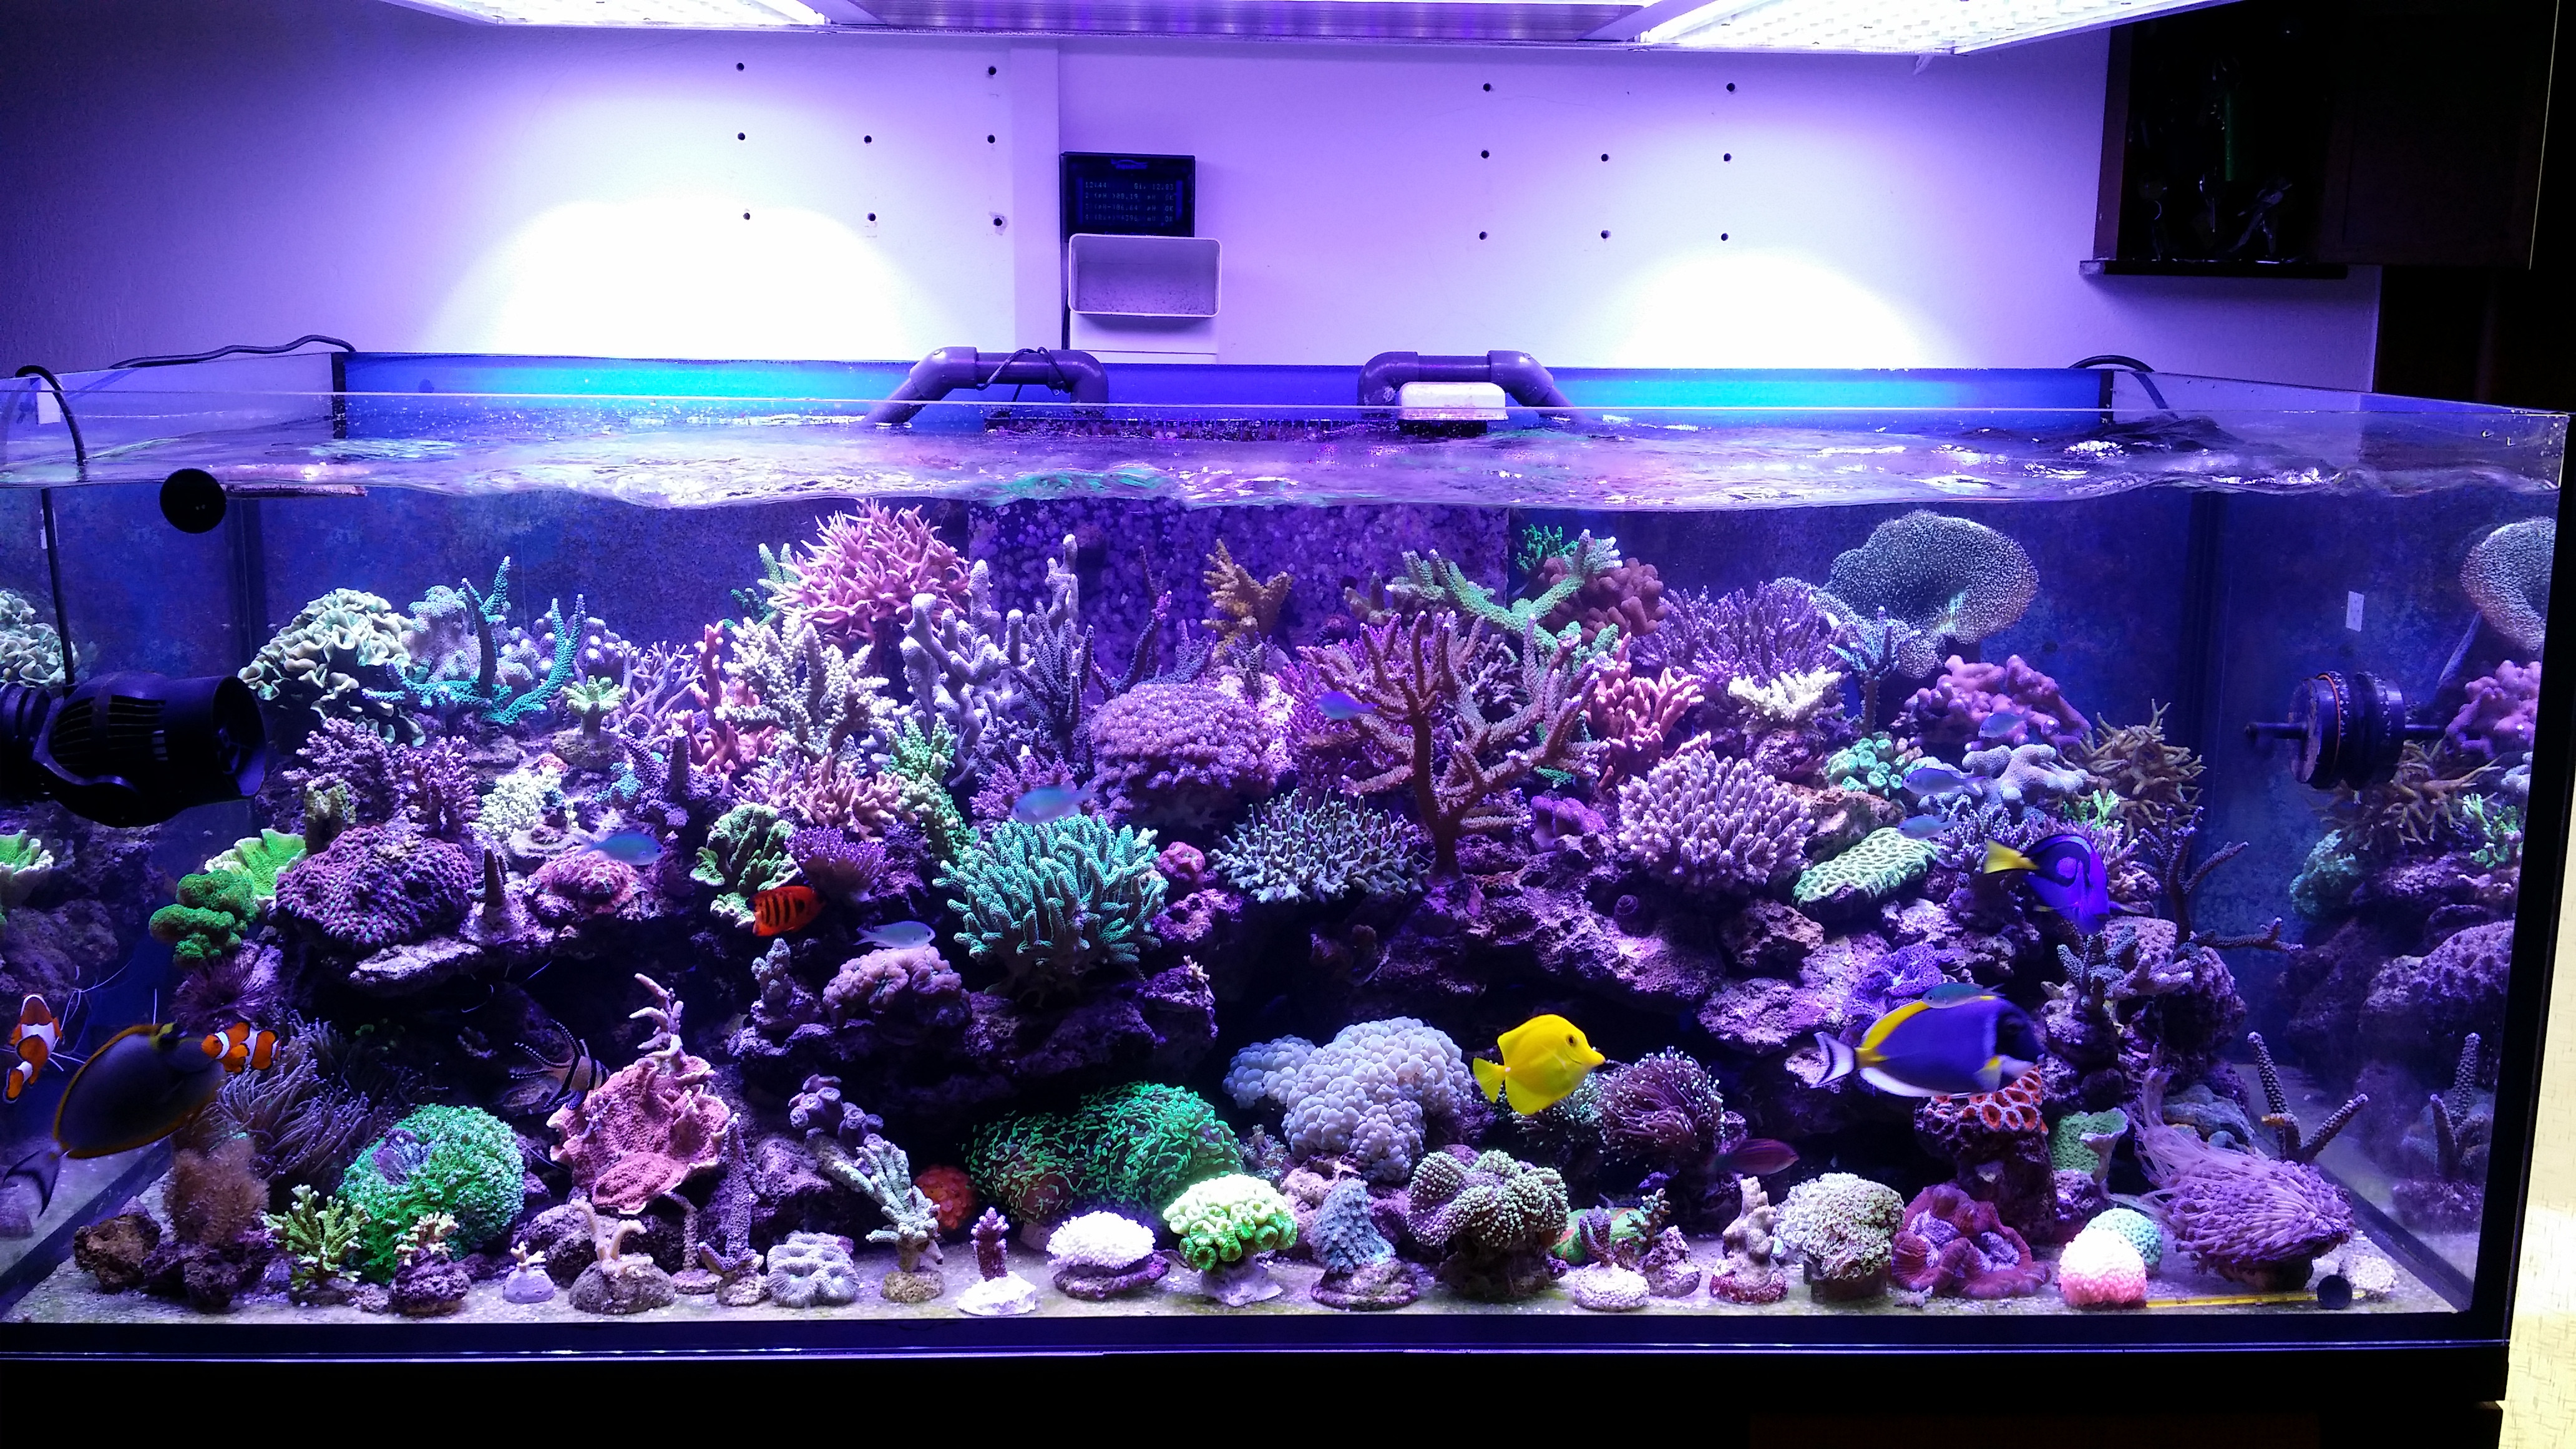 Best ideas about Led Aquarium Lights . Save or Pin This tank is truly one beautiful •Aquarium LED Lighting•Orphek Now.